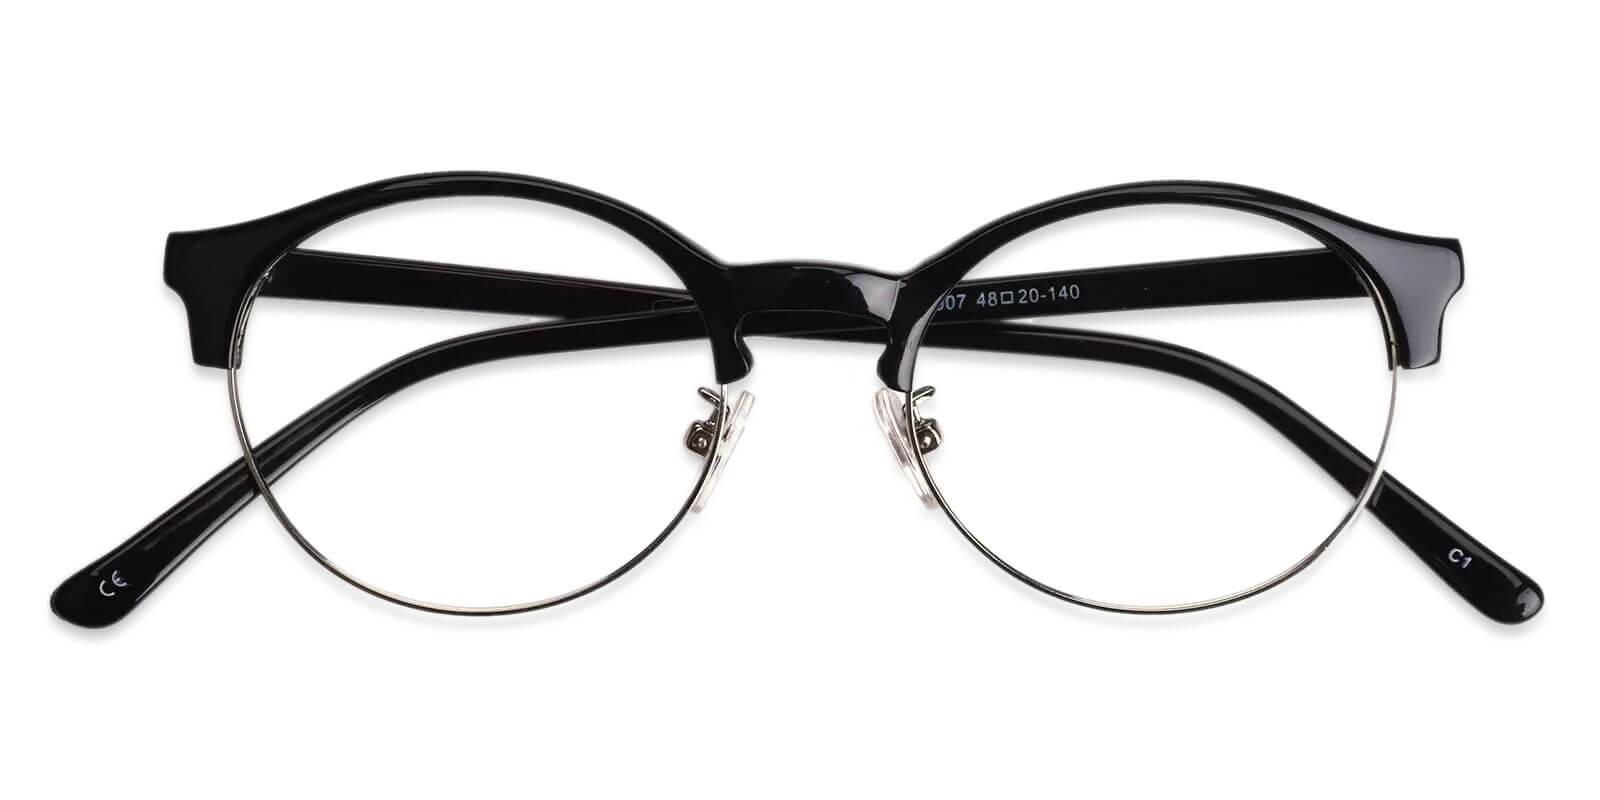 Zenoria Black Combination NosePads , Eyeglasses Frames from ABBE Glasses